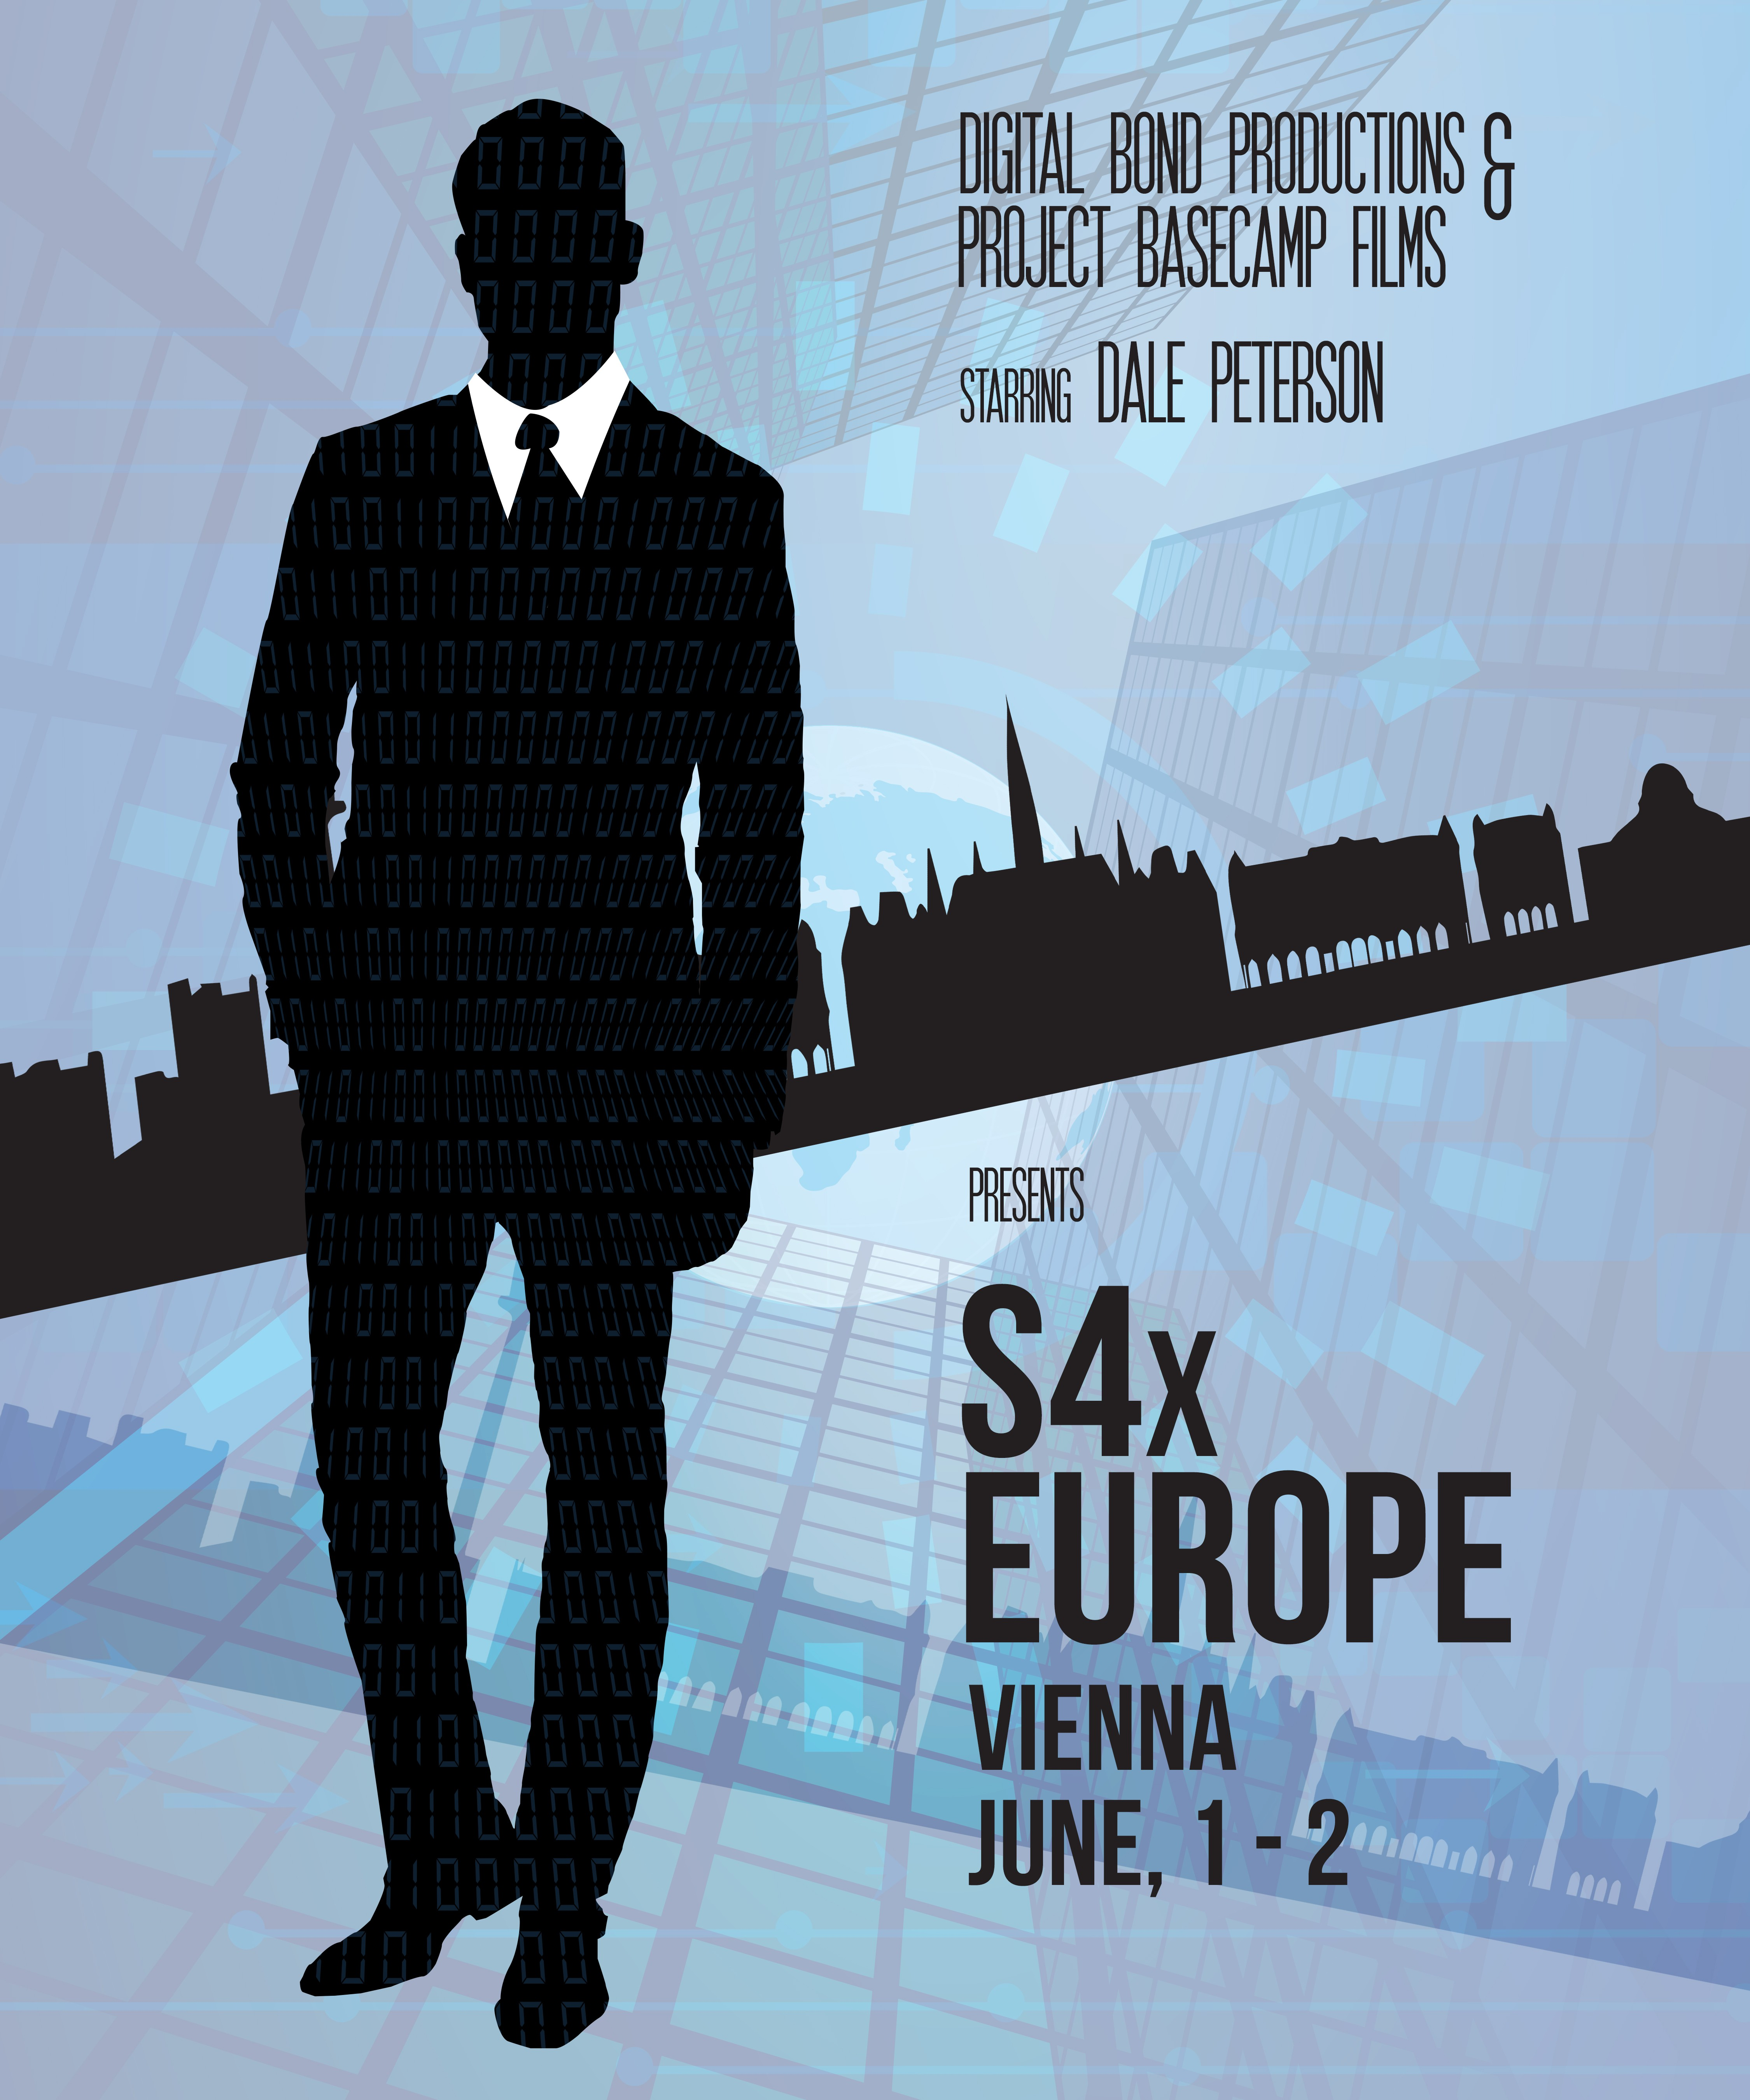 S4xEurope Movie Poster to Promote Conference